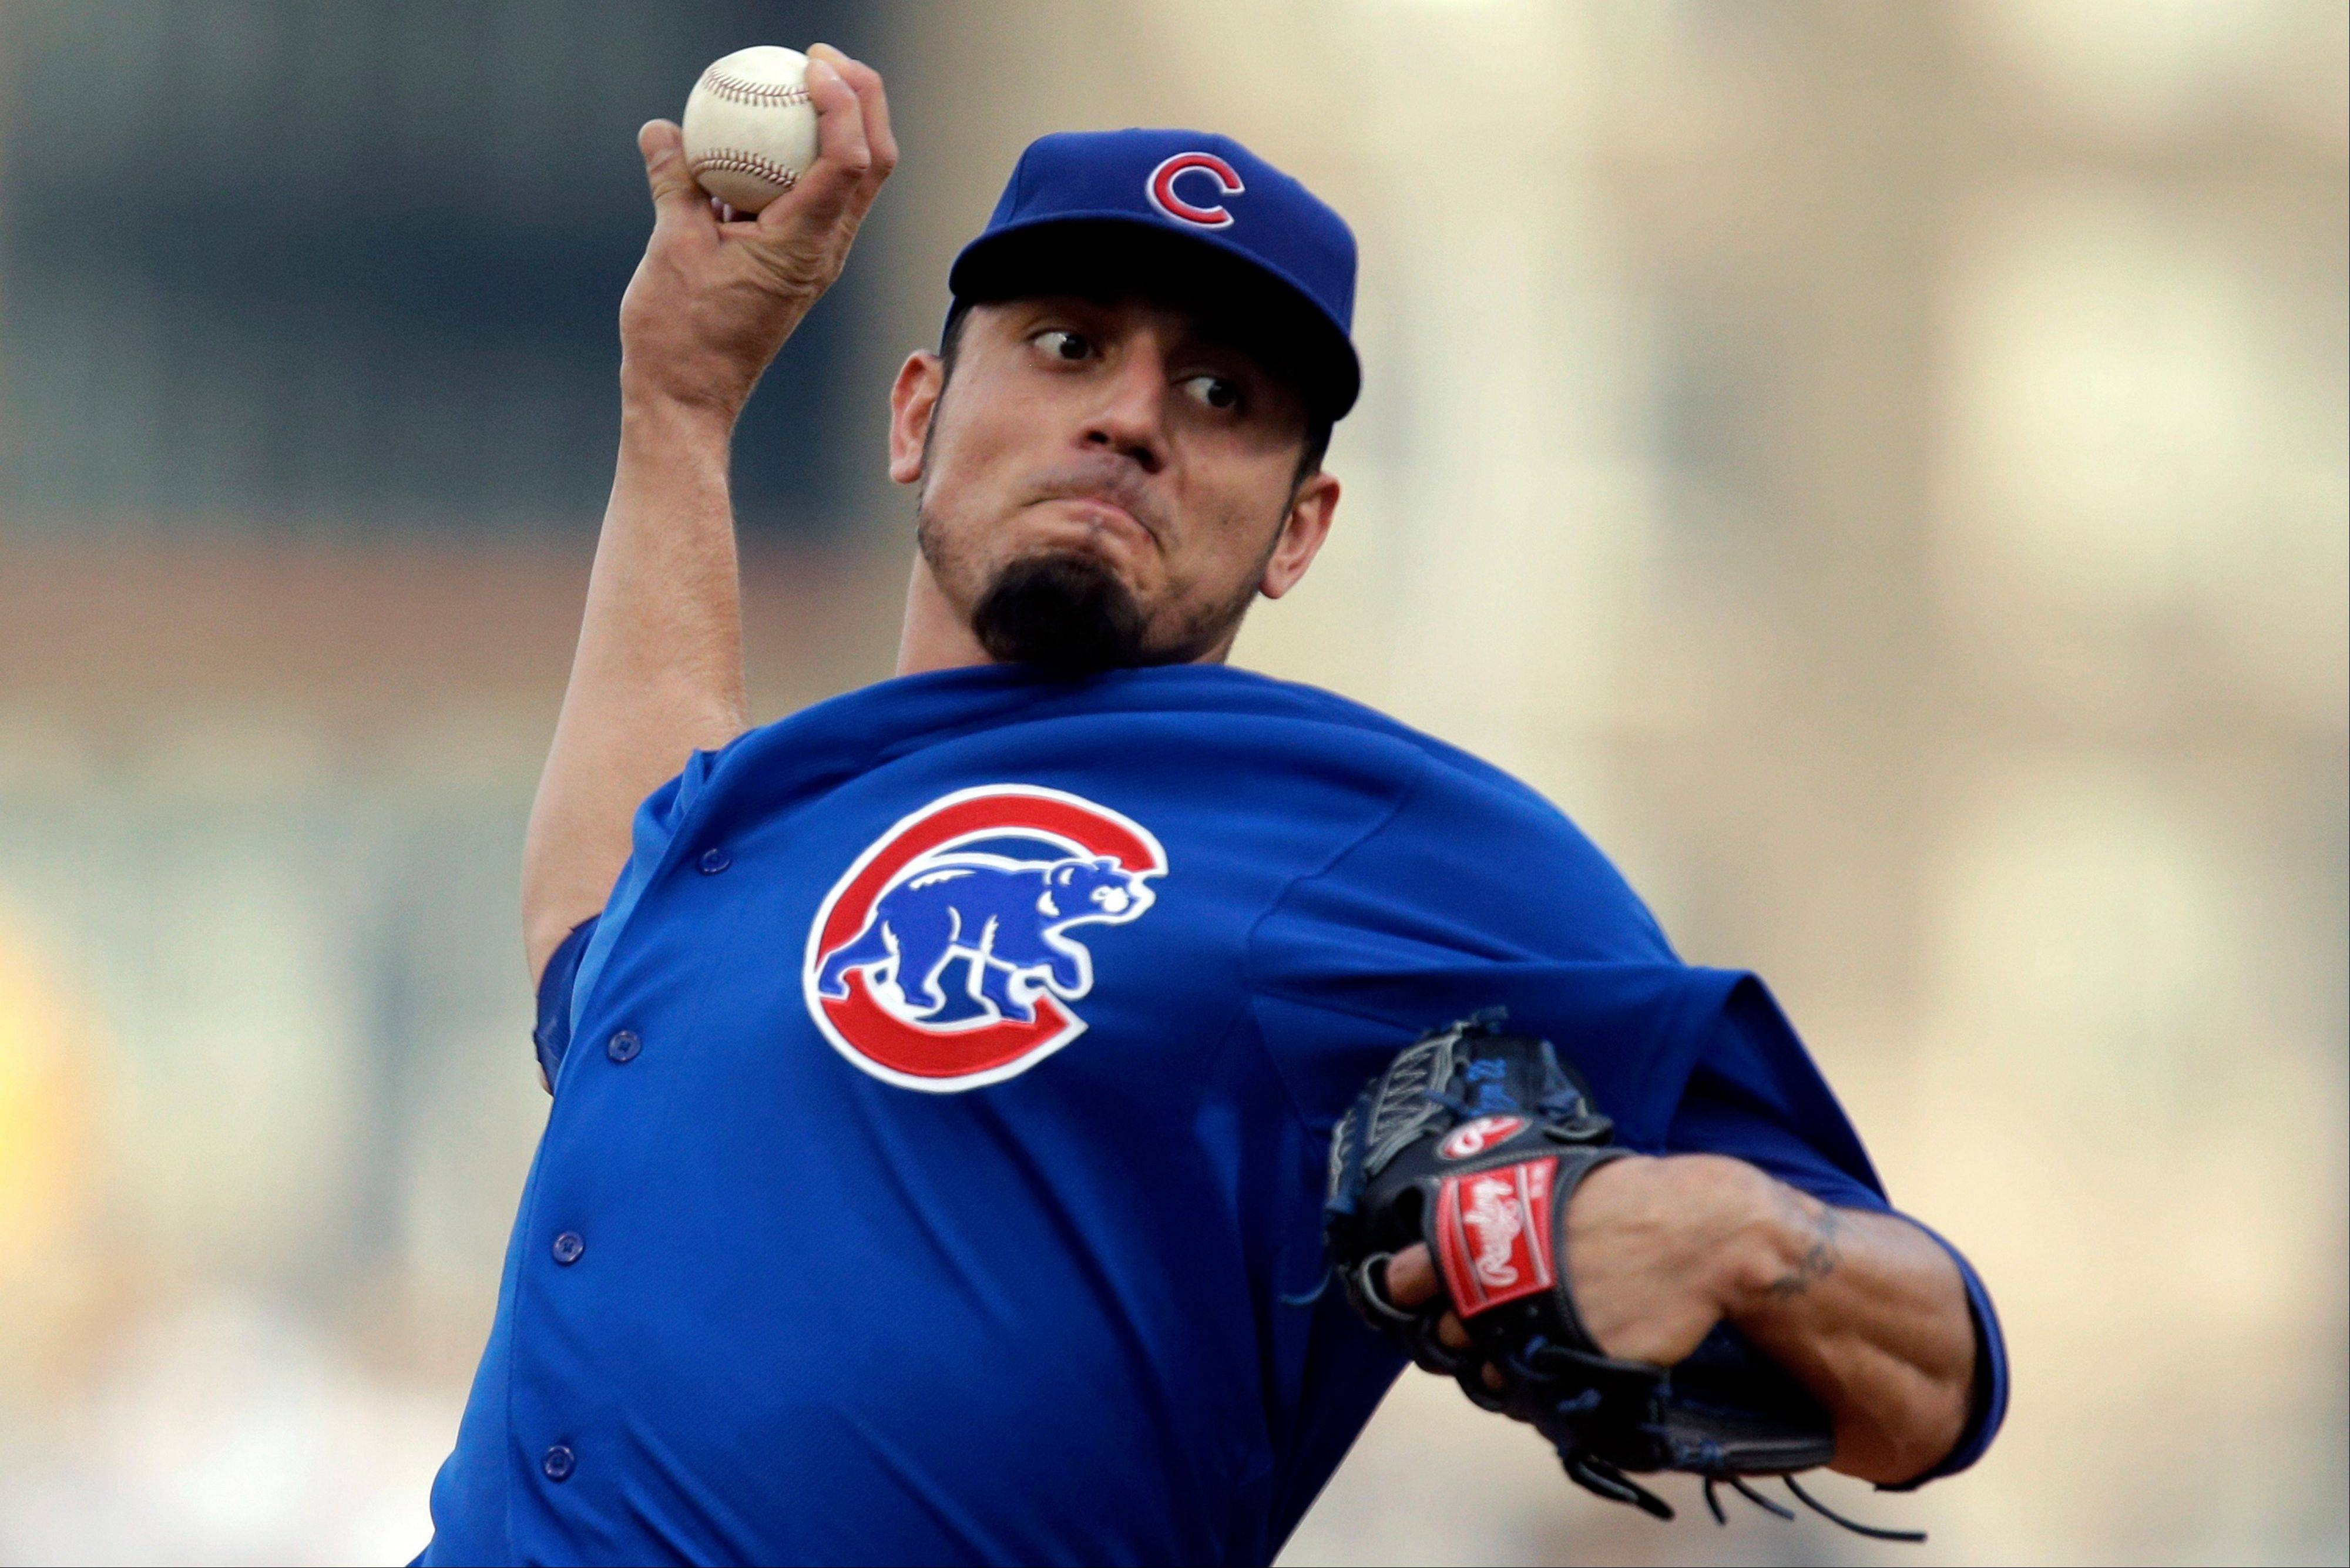 Cubs starting pitcher Matt Garza works against the Pirates on Tuesday in Pittsburgh.